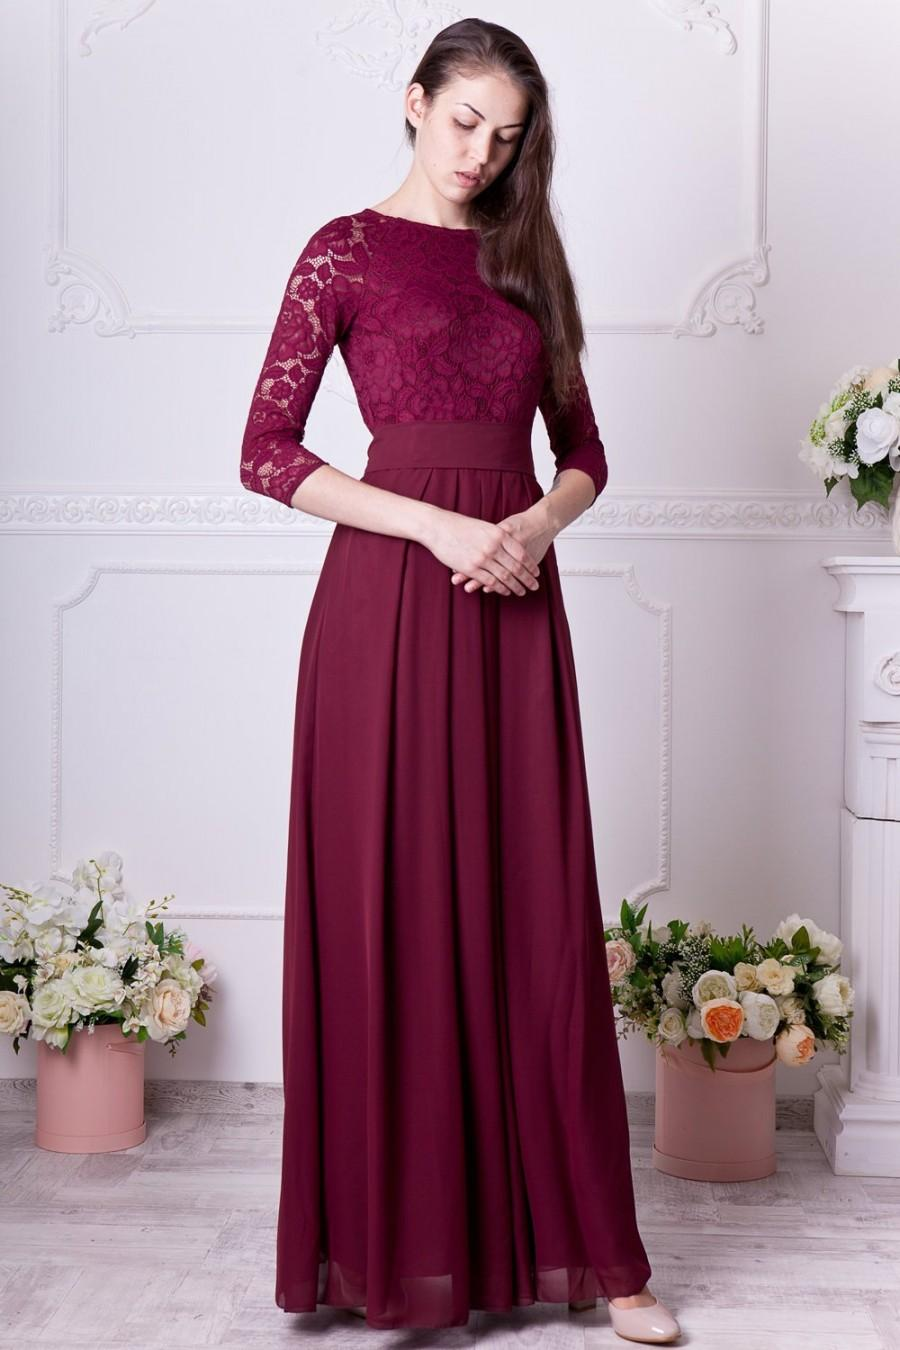 Hochzeit - Burgundy bridesmaid dress long. Floral lace formal gown with sleeves. Modest evening dress plus size. 3/4 sleeves mother of the bride dress